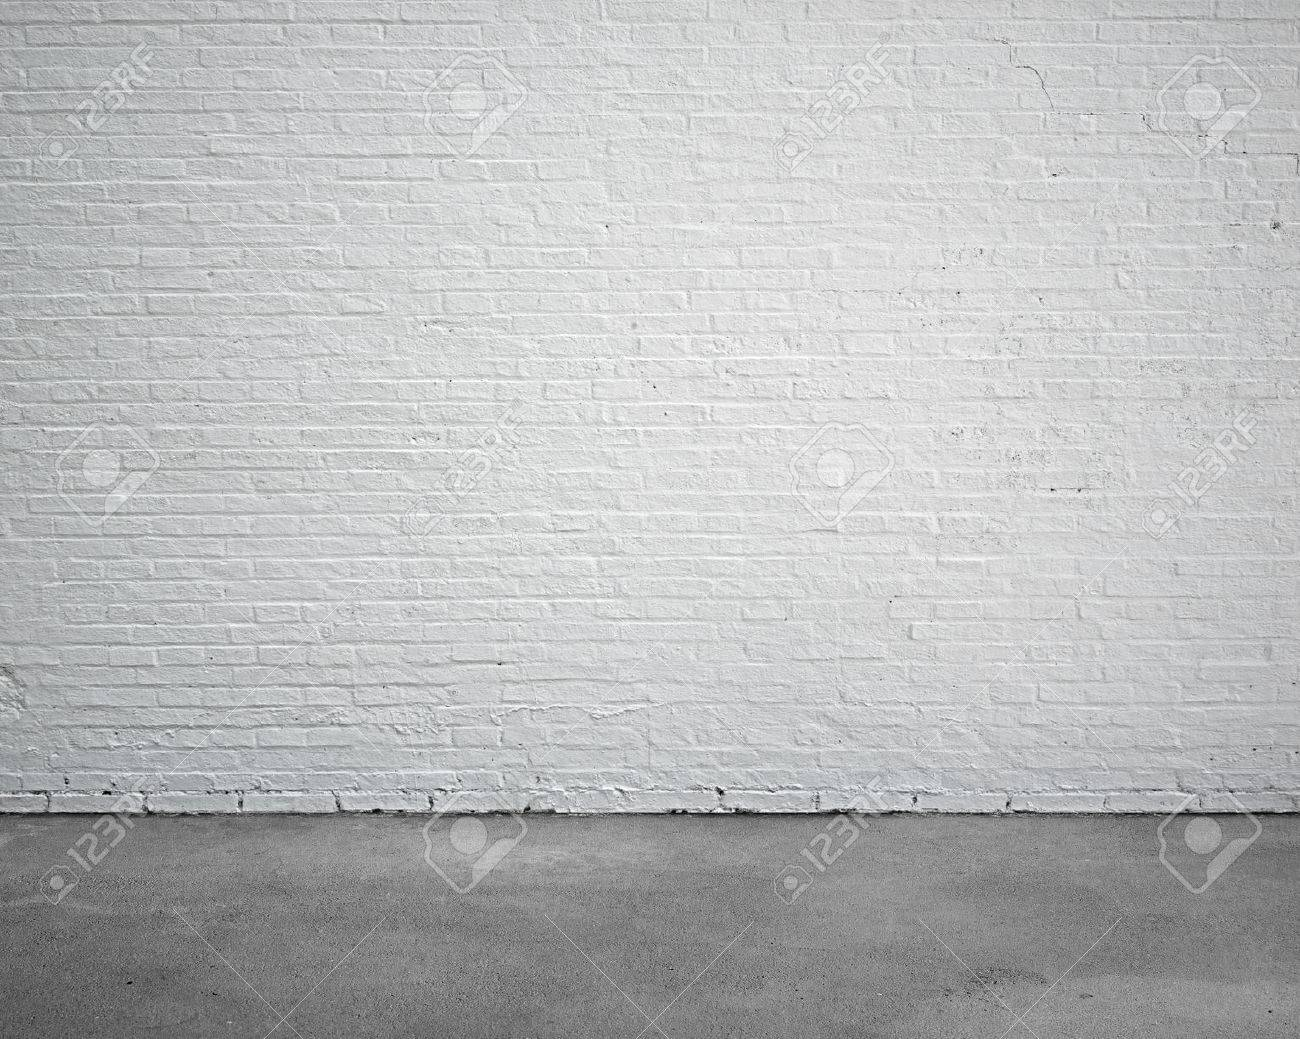 room interior with white brick wall and concrete floor, nobody, empty - 52366940